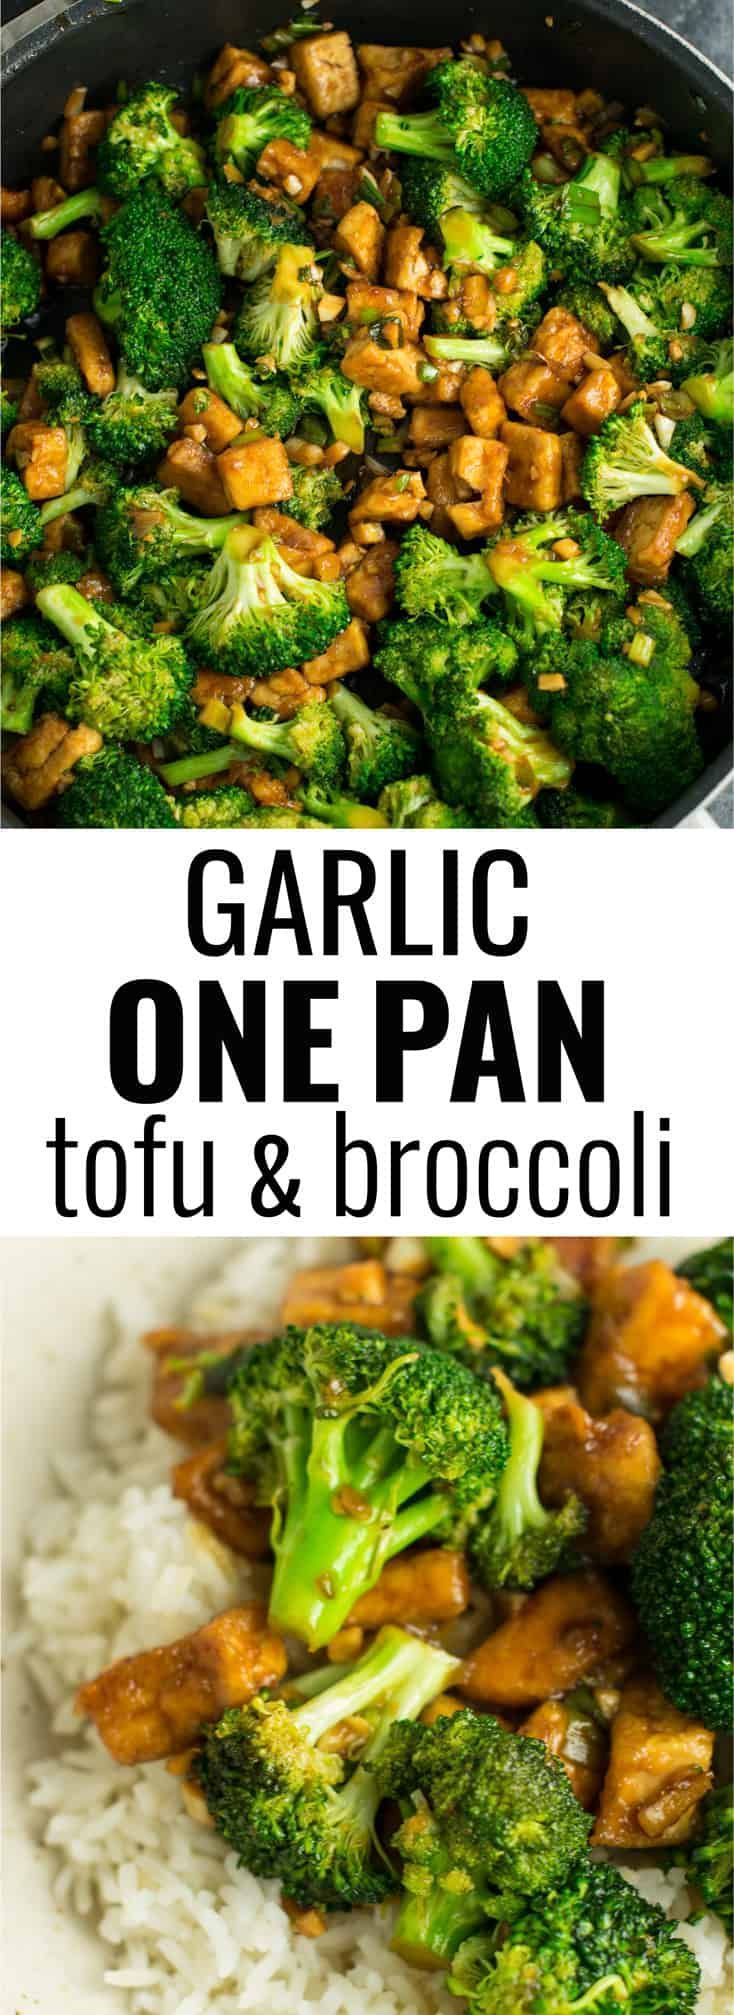 Garlic tofu broccoli skillet recipe made in just one pan. A healthy alternative …